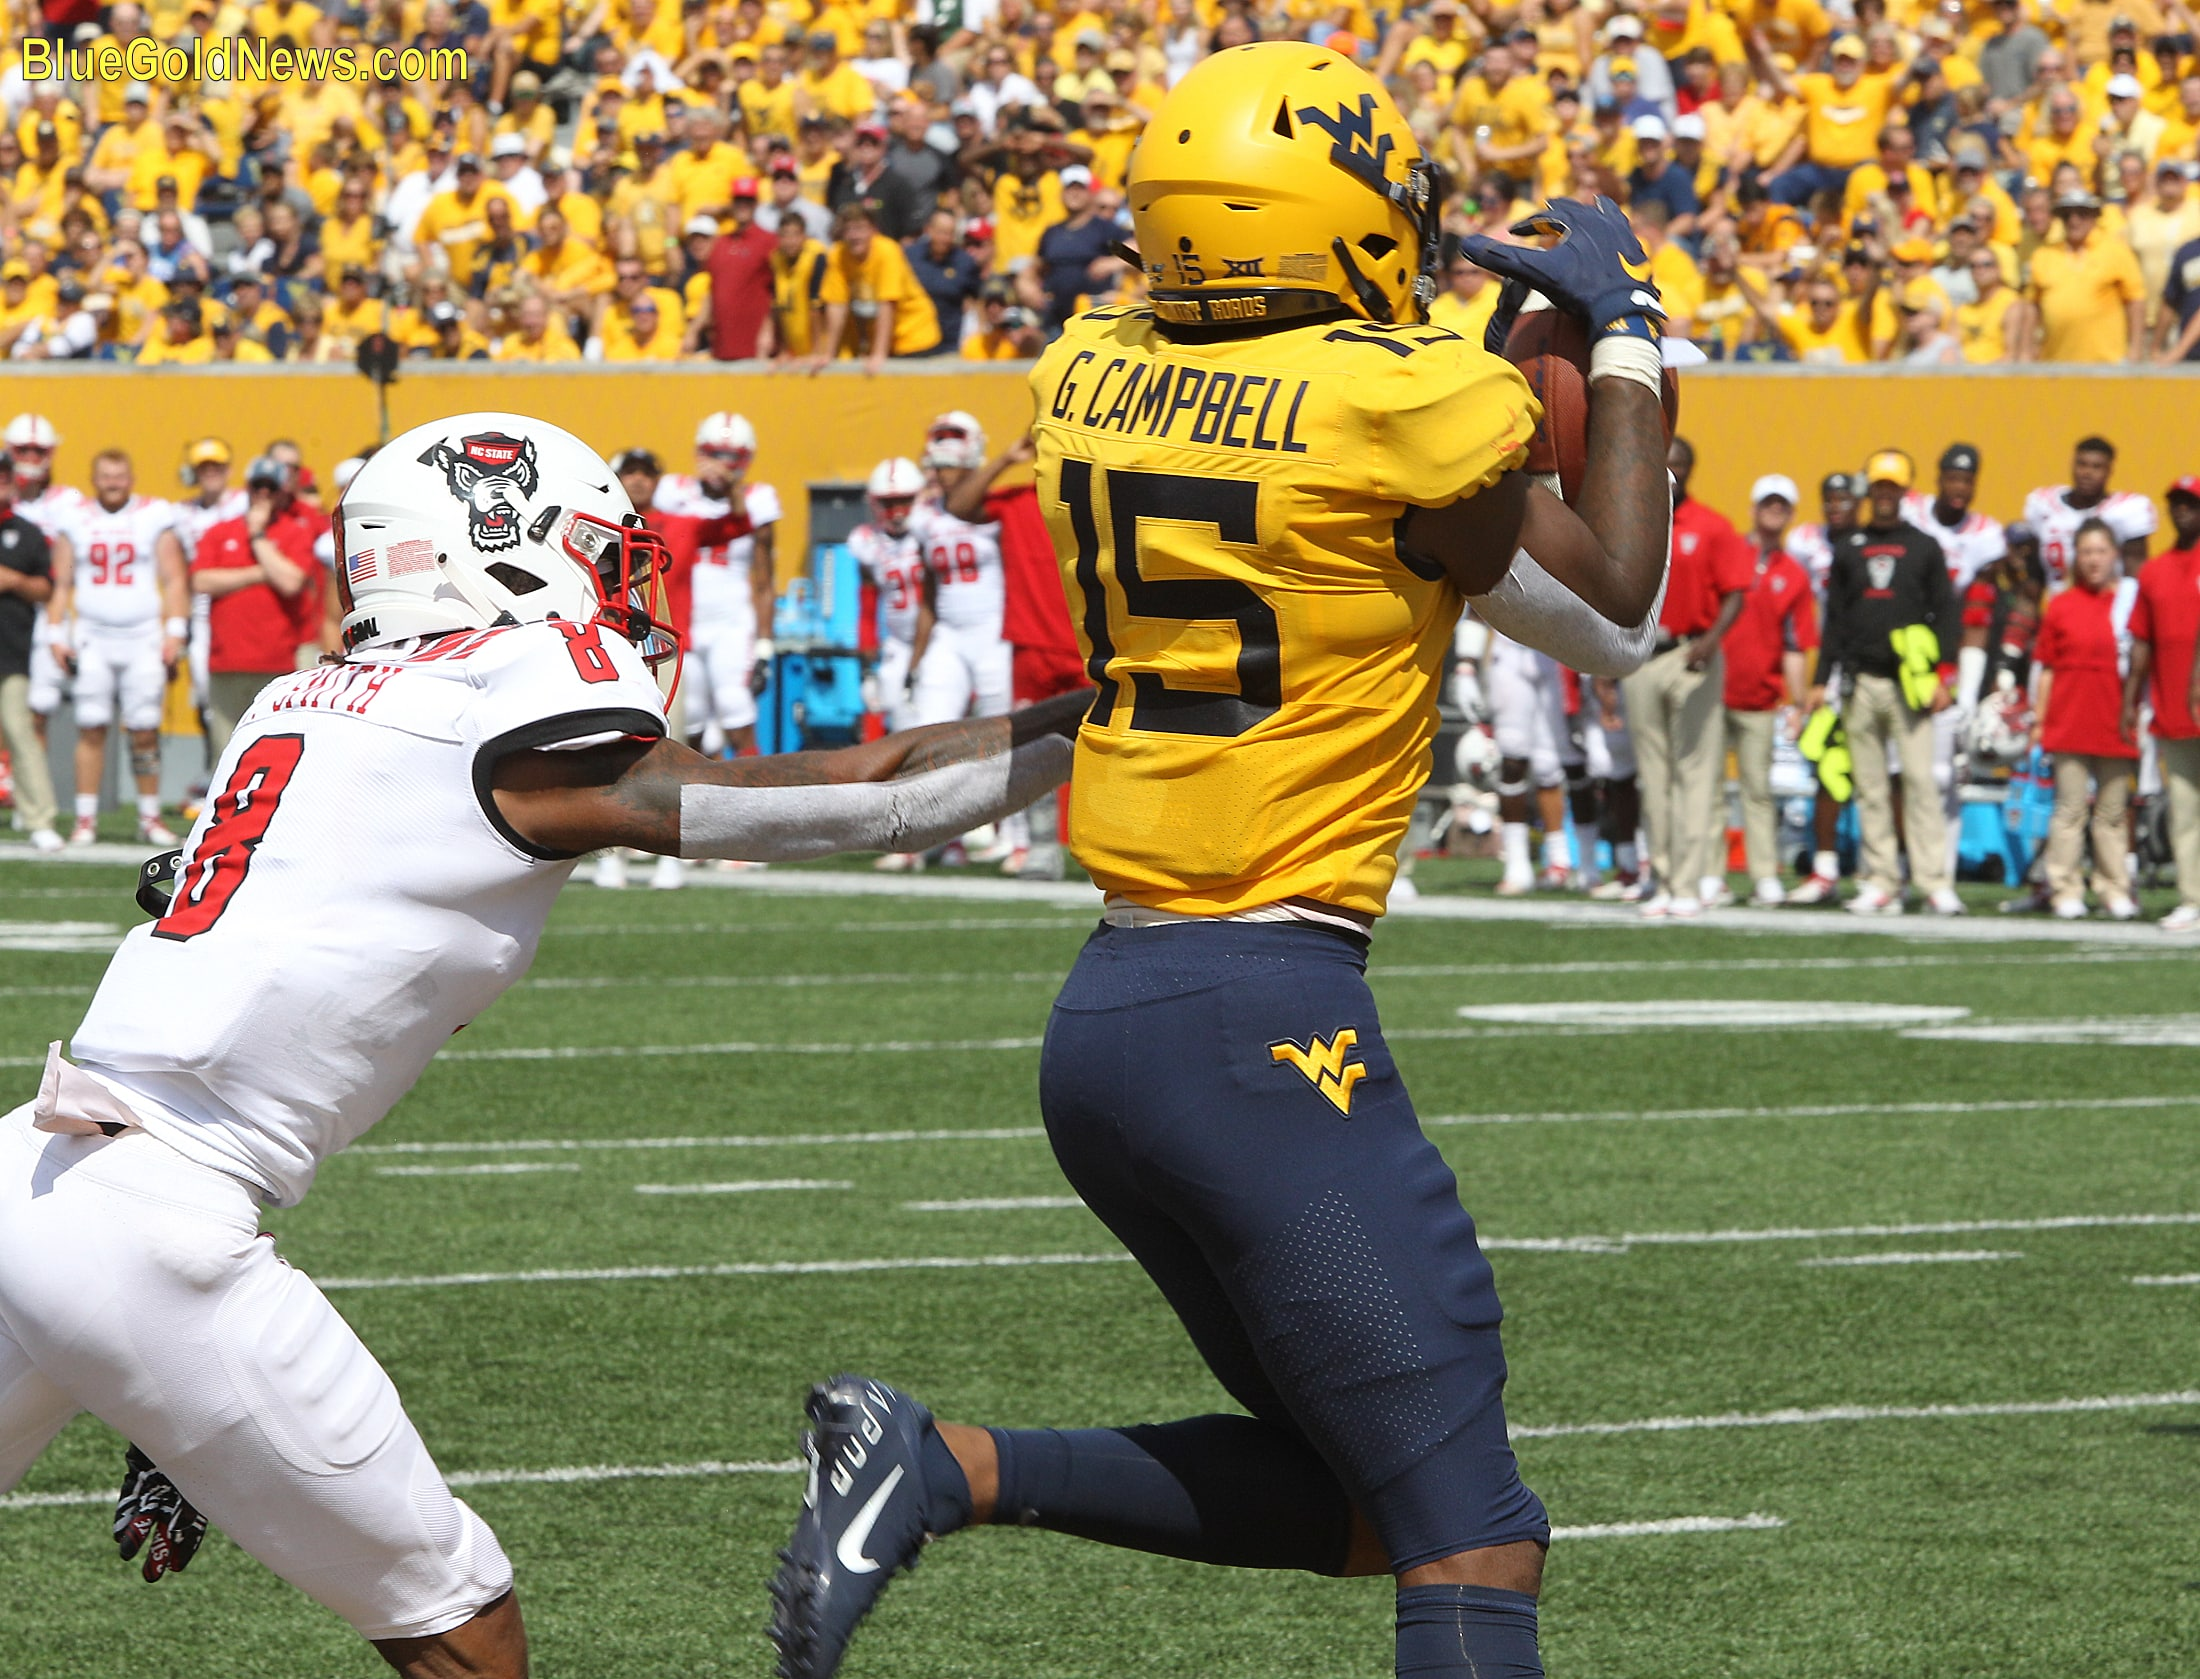 West Virginia wide receiver George Campbell cradles a touchdown pass late in the second quarter